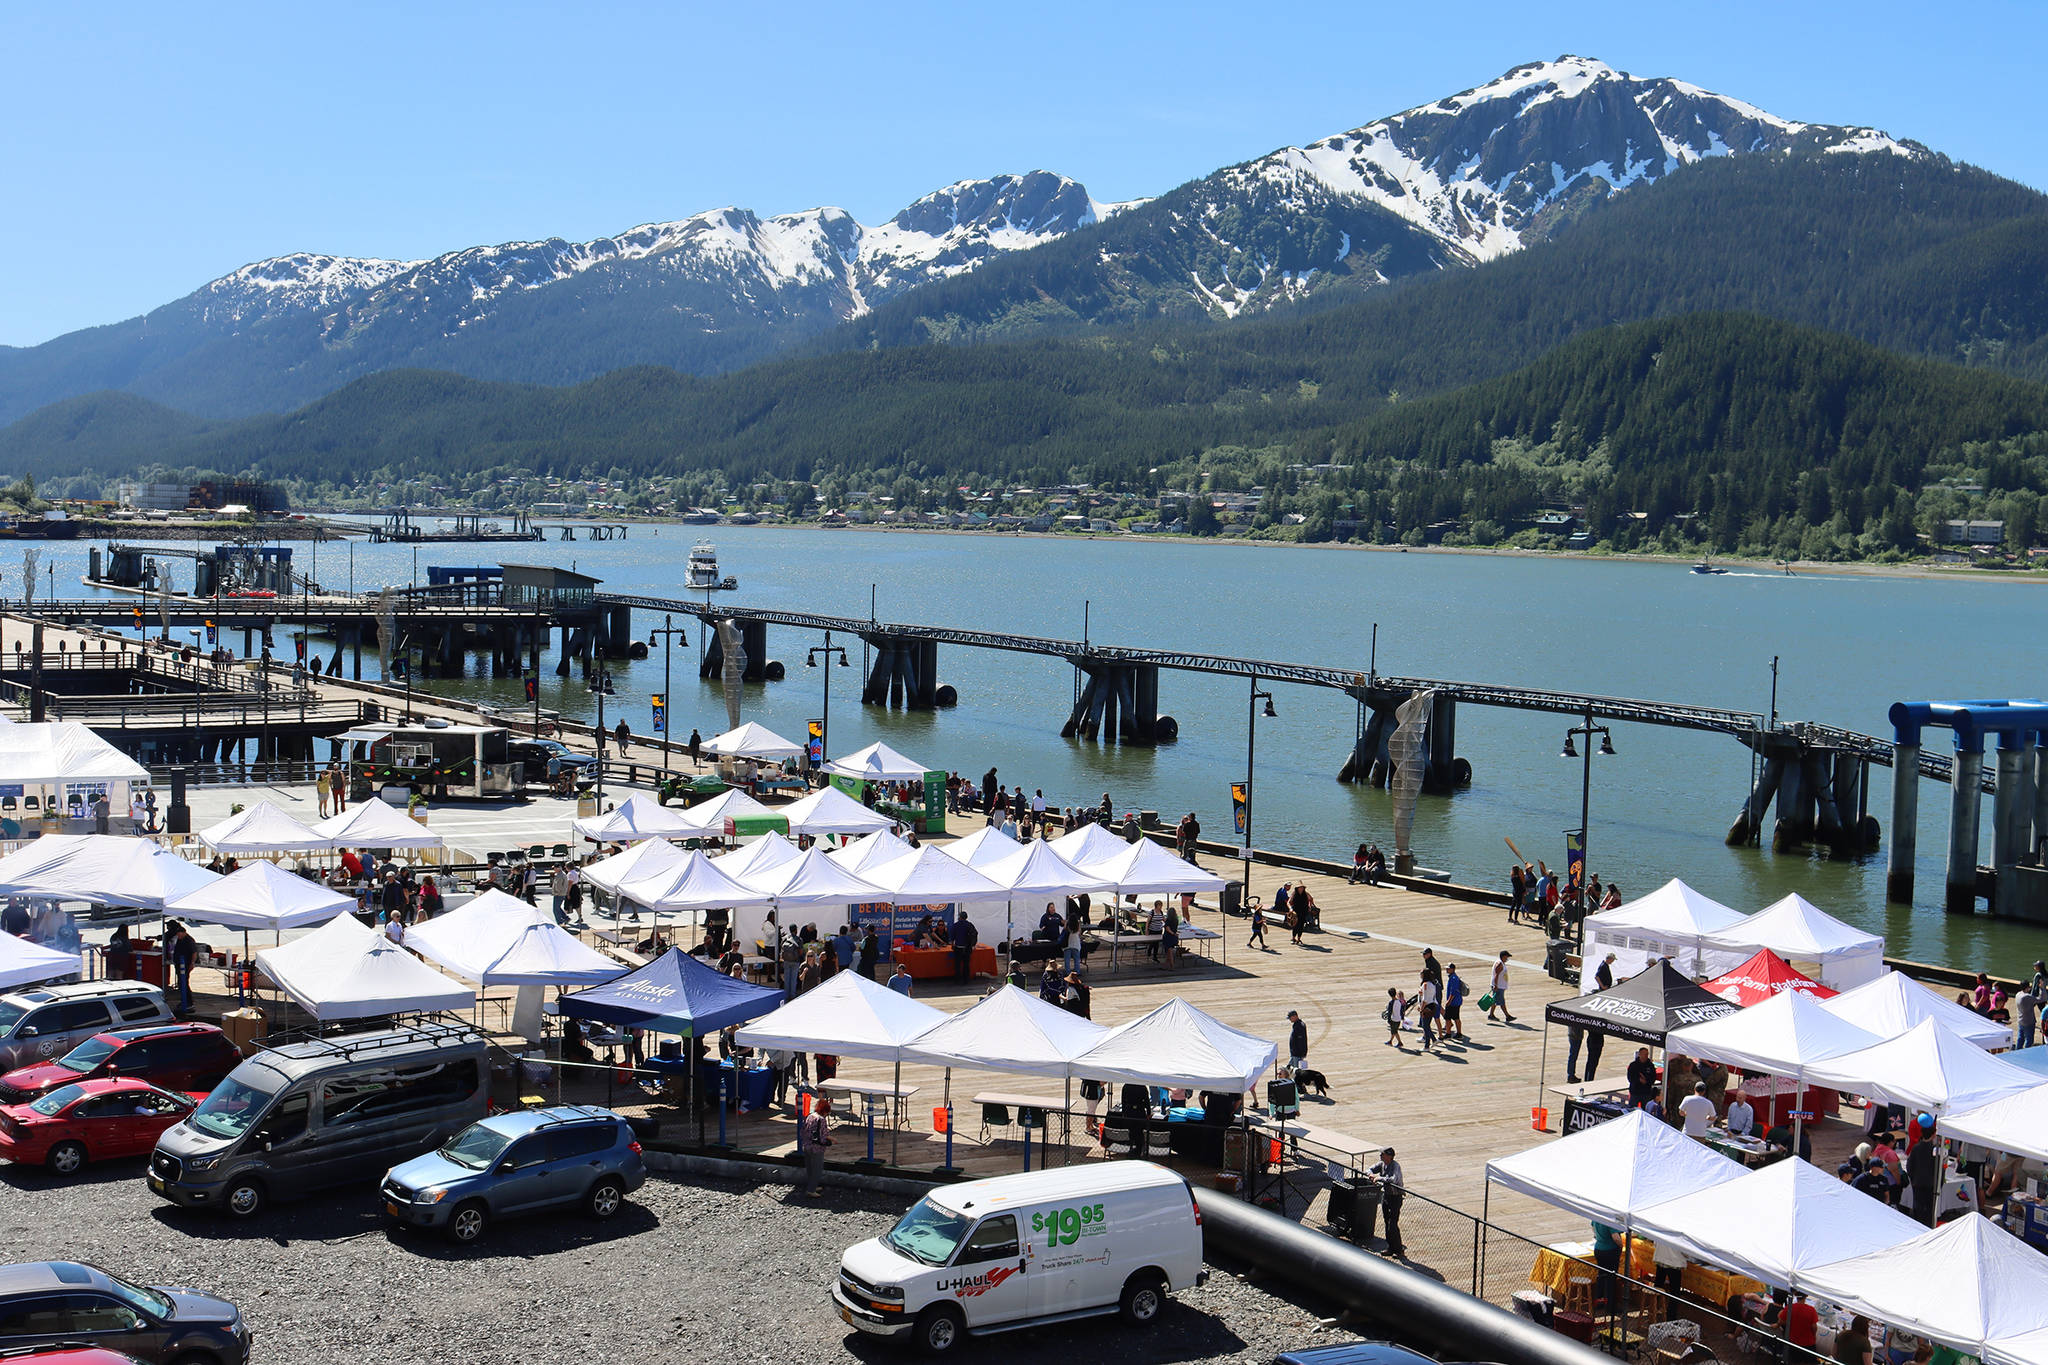 More vendors than ever were part of the 11th edition of the Juneau Maritime Festival held Saturday, according to Juneau Economic Development Council executive director Brian Holst. In total, there were 56 vendors at this year's event. Holst said about 40 vendors had been a typical number at past iterations of the event that celebrates Juneau's maritime culture. (Ben Hohenstatt / Juneau Empire)